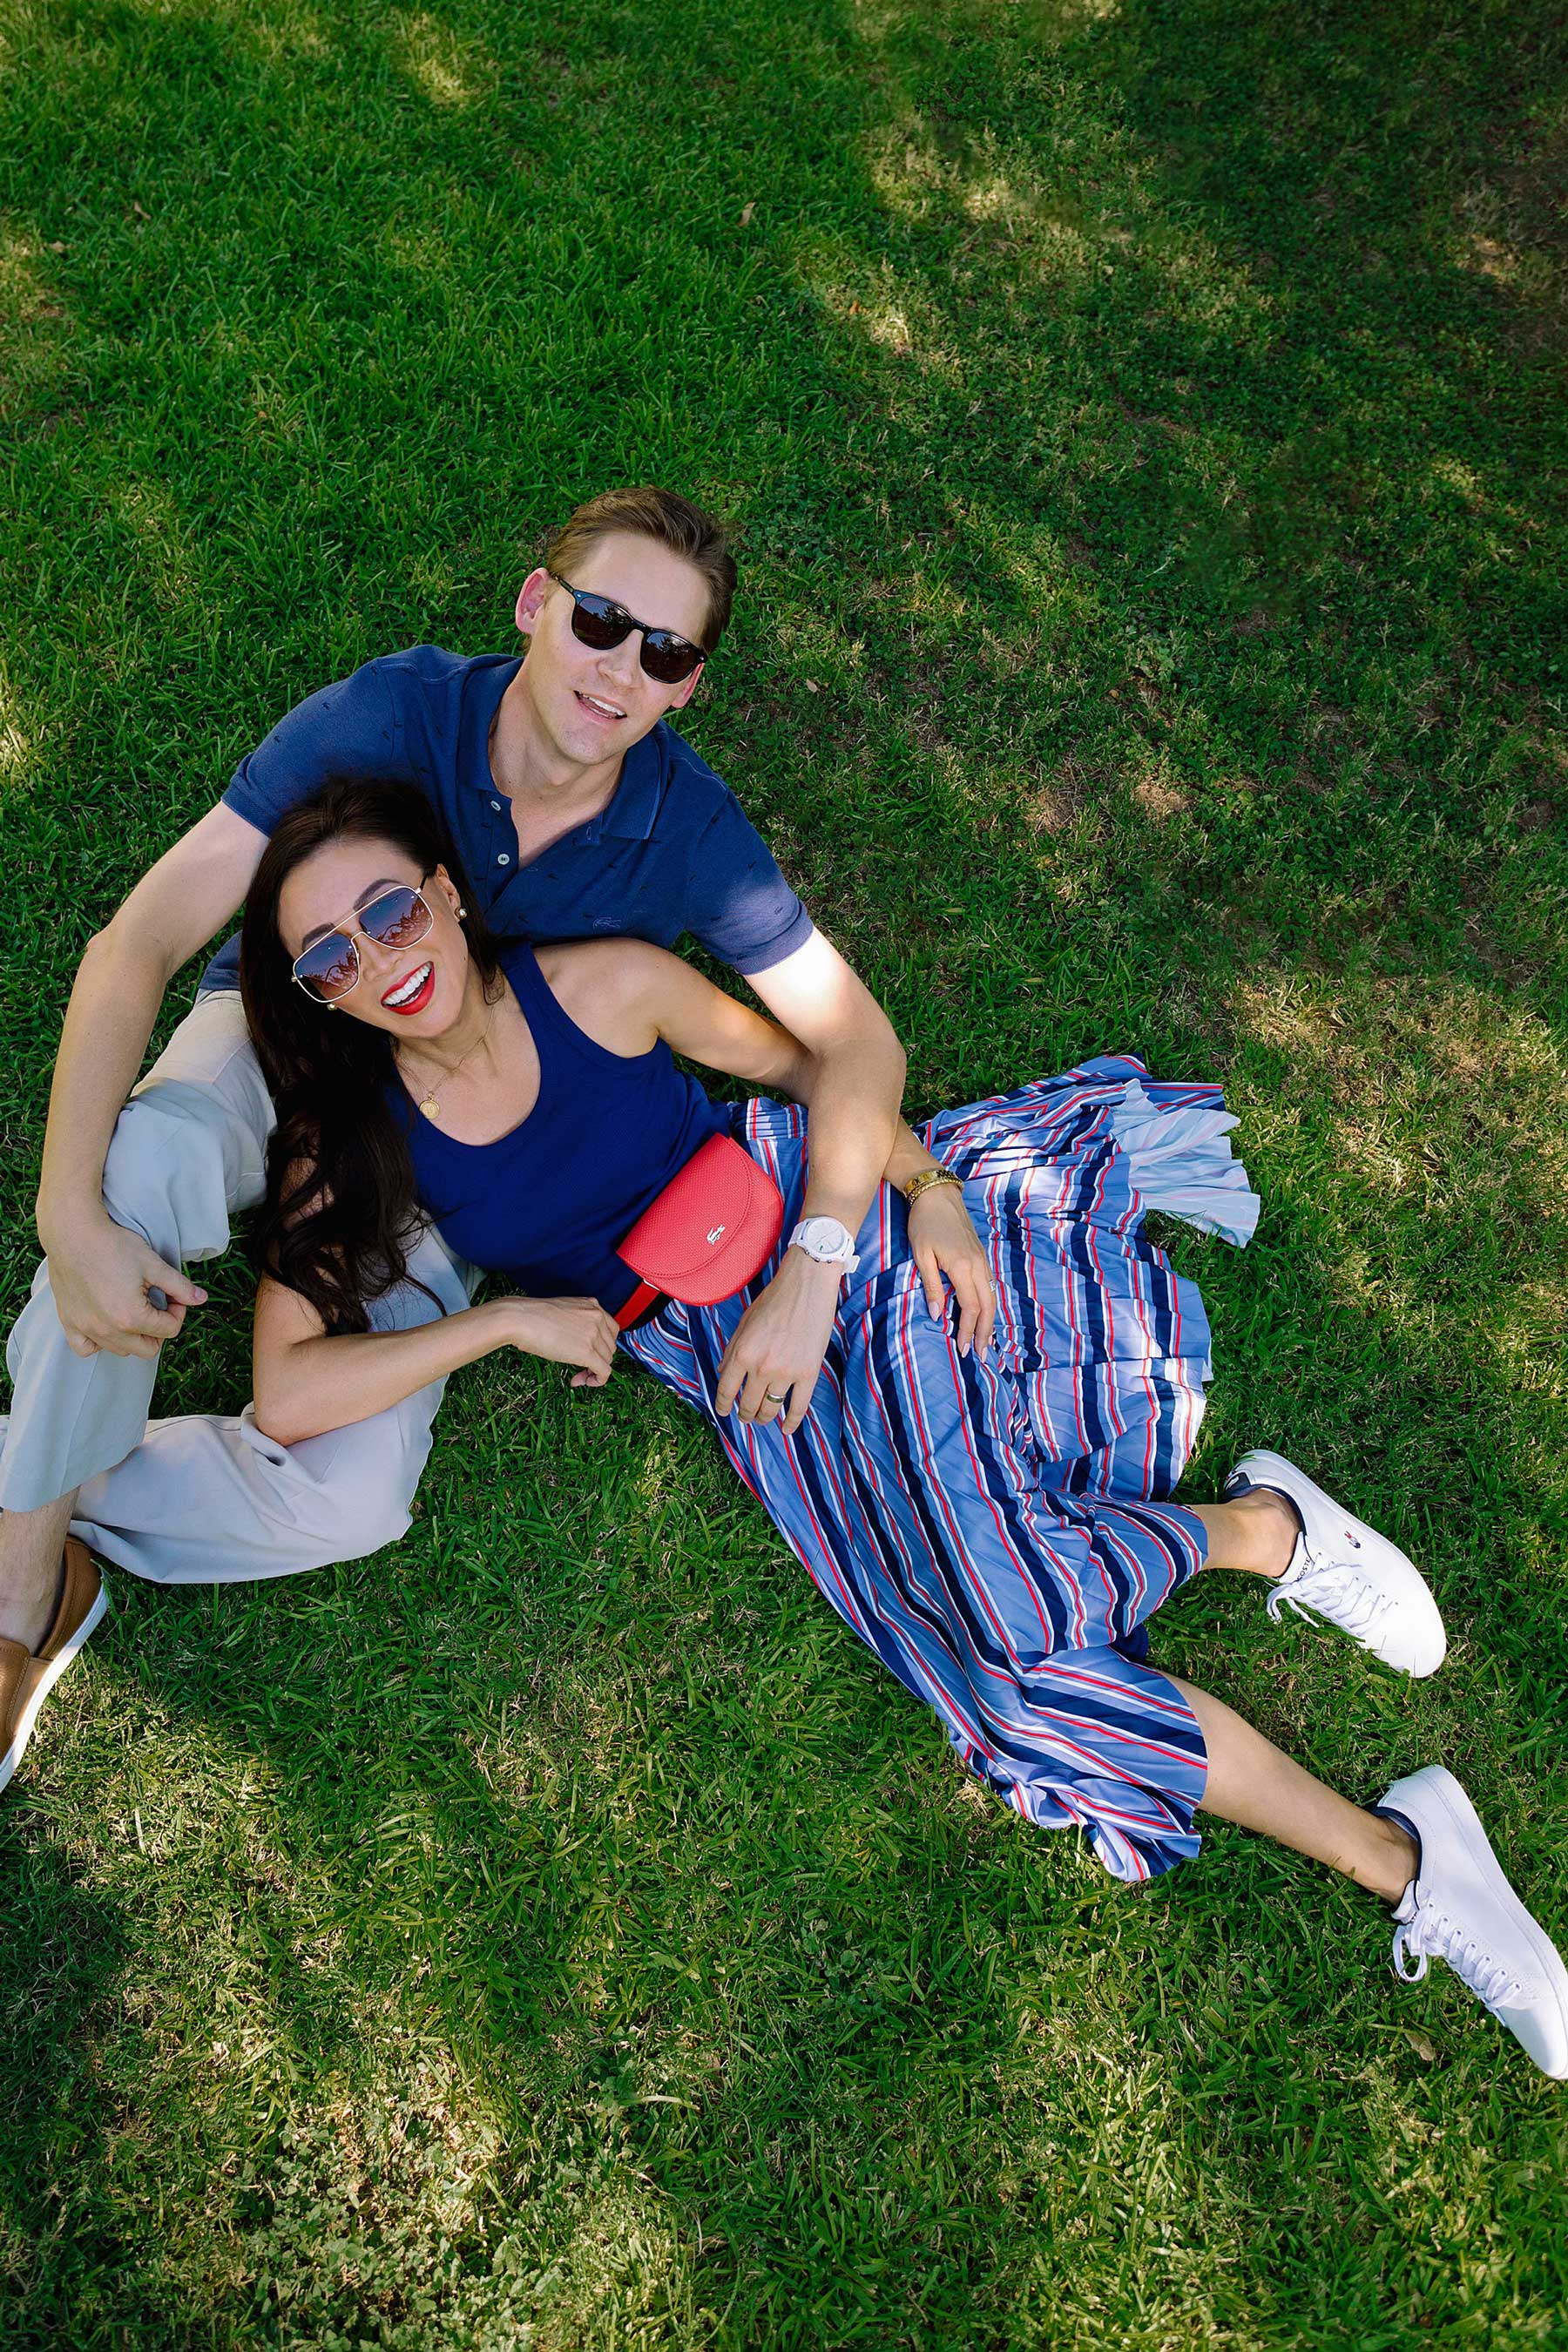 lacoste clothing couple photo in grass pose